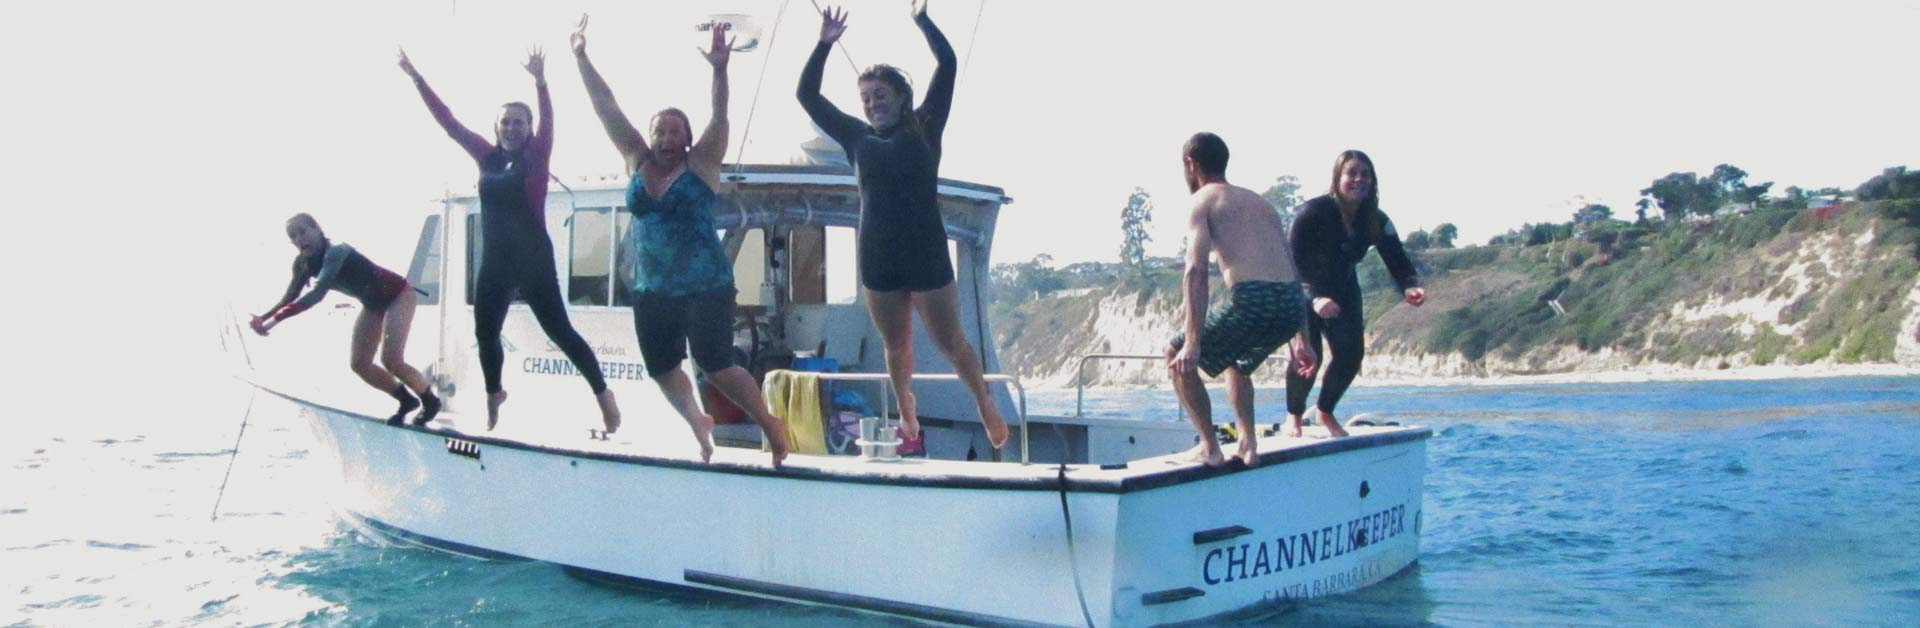 A happy group of Santa Barbara Channelkeeper members jumping off the R/V Channelkeeper boat.